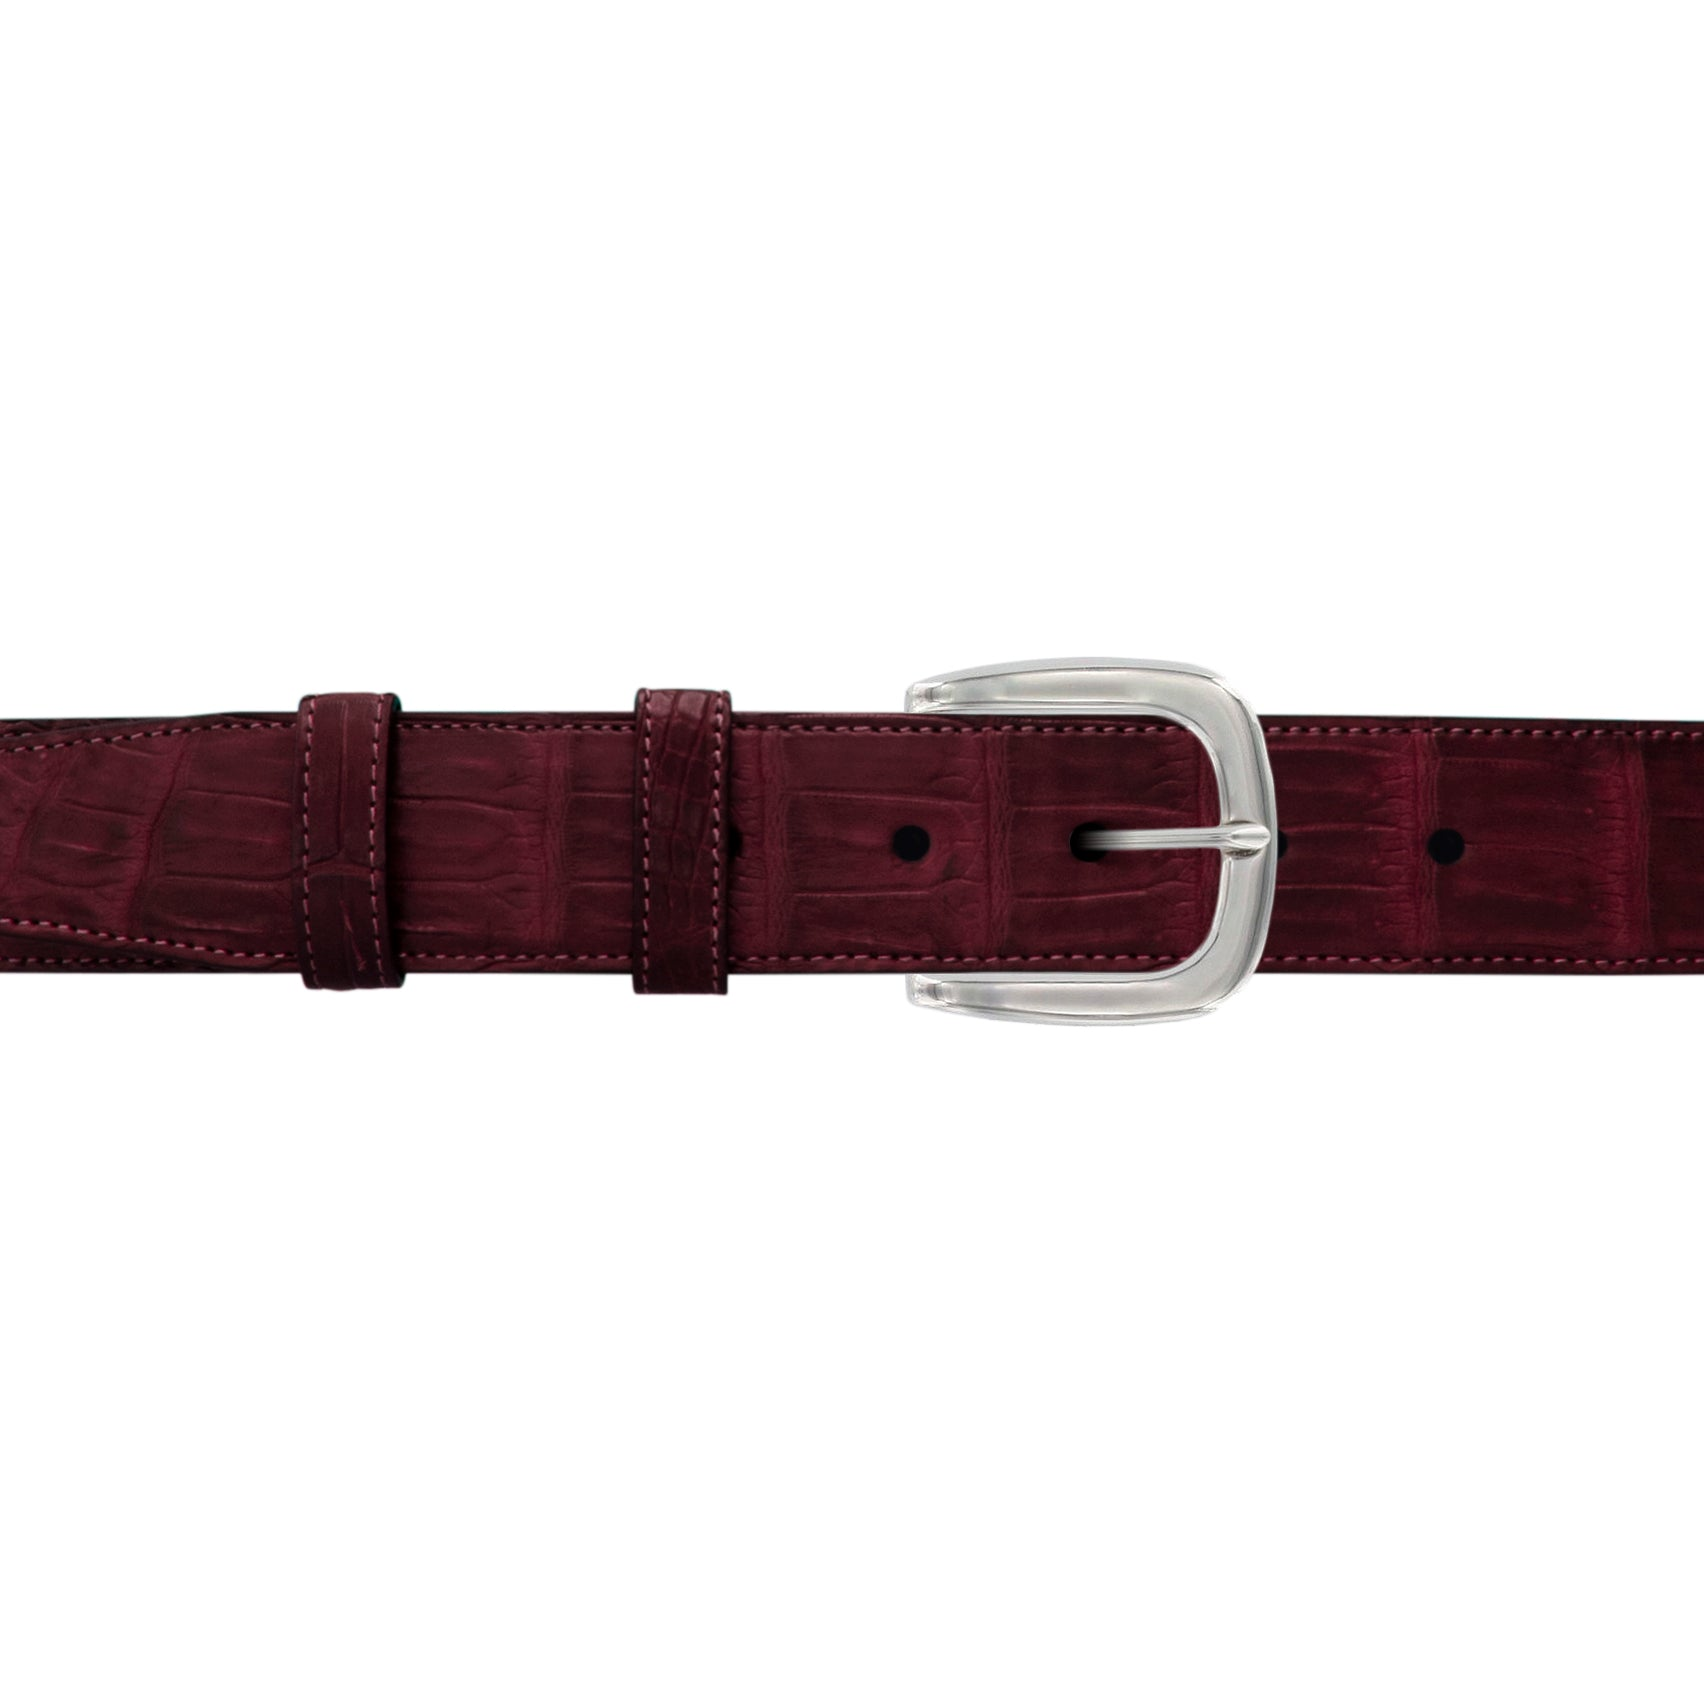 "1 1/2"" Burgundy Seasonal Belt with Oxford Cocktail Buckle in Polished Nickel"